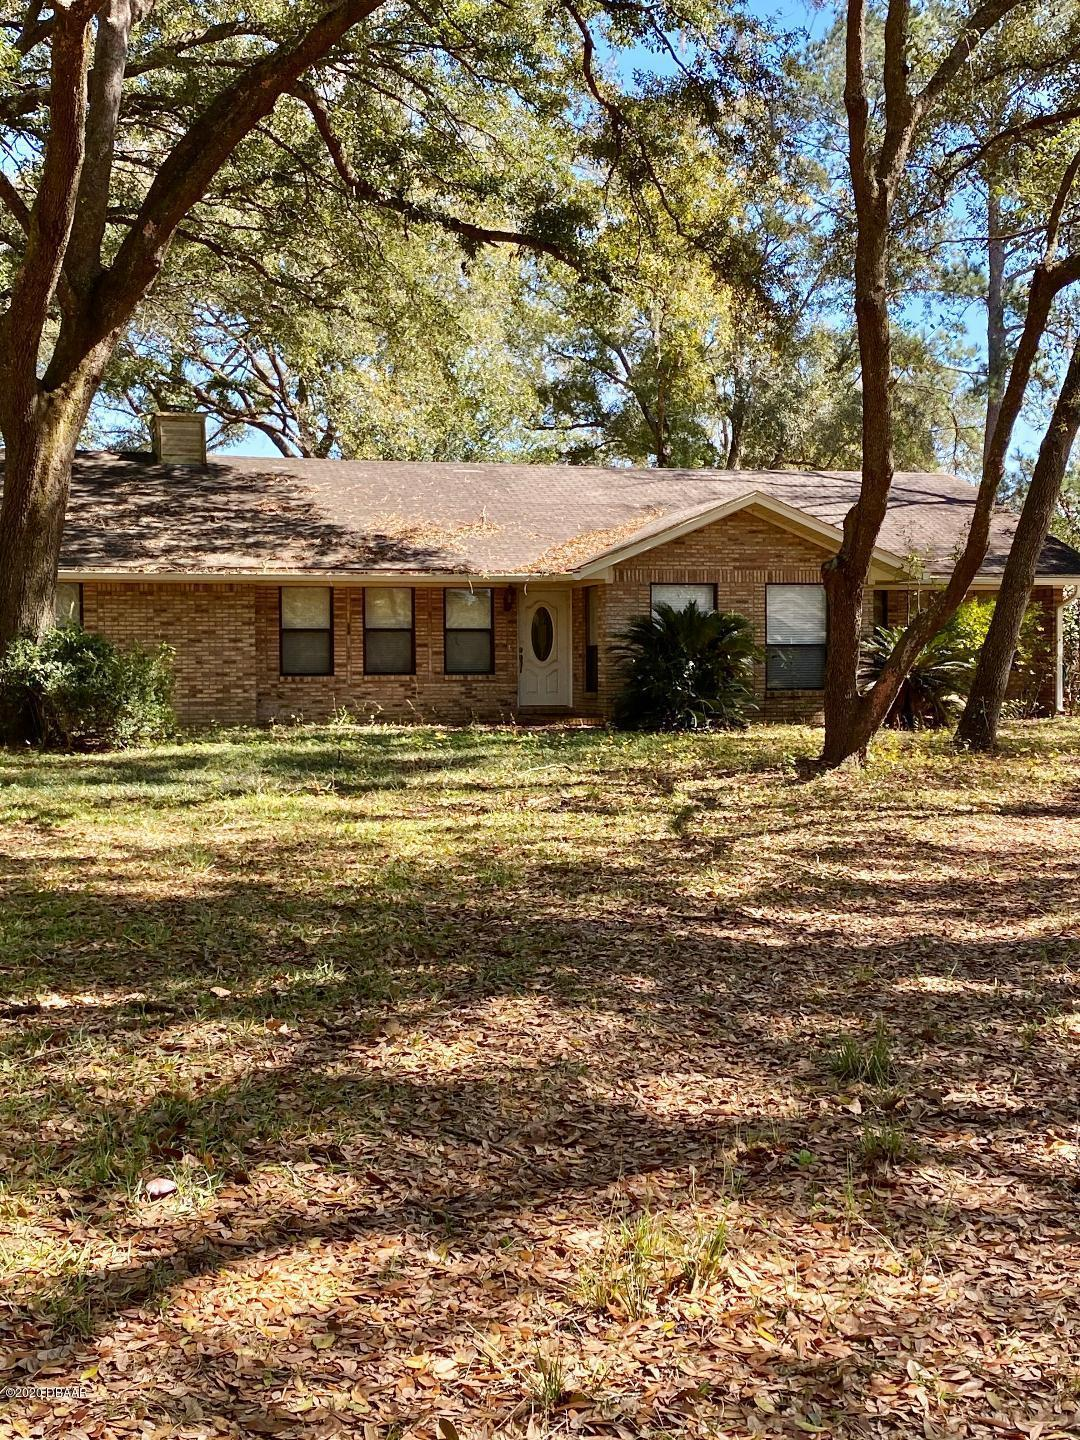 2333 tranquility Lane, Green Cove Springs, Florida 3 Bedroom as one of Homes & Land Real Estate